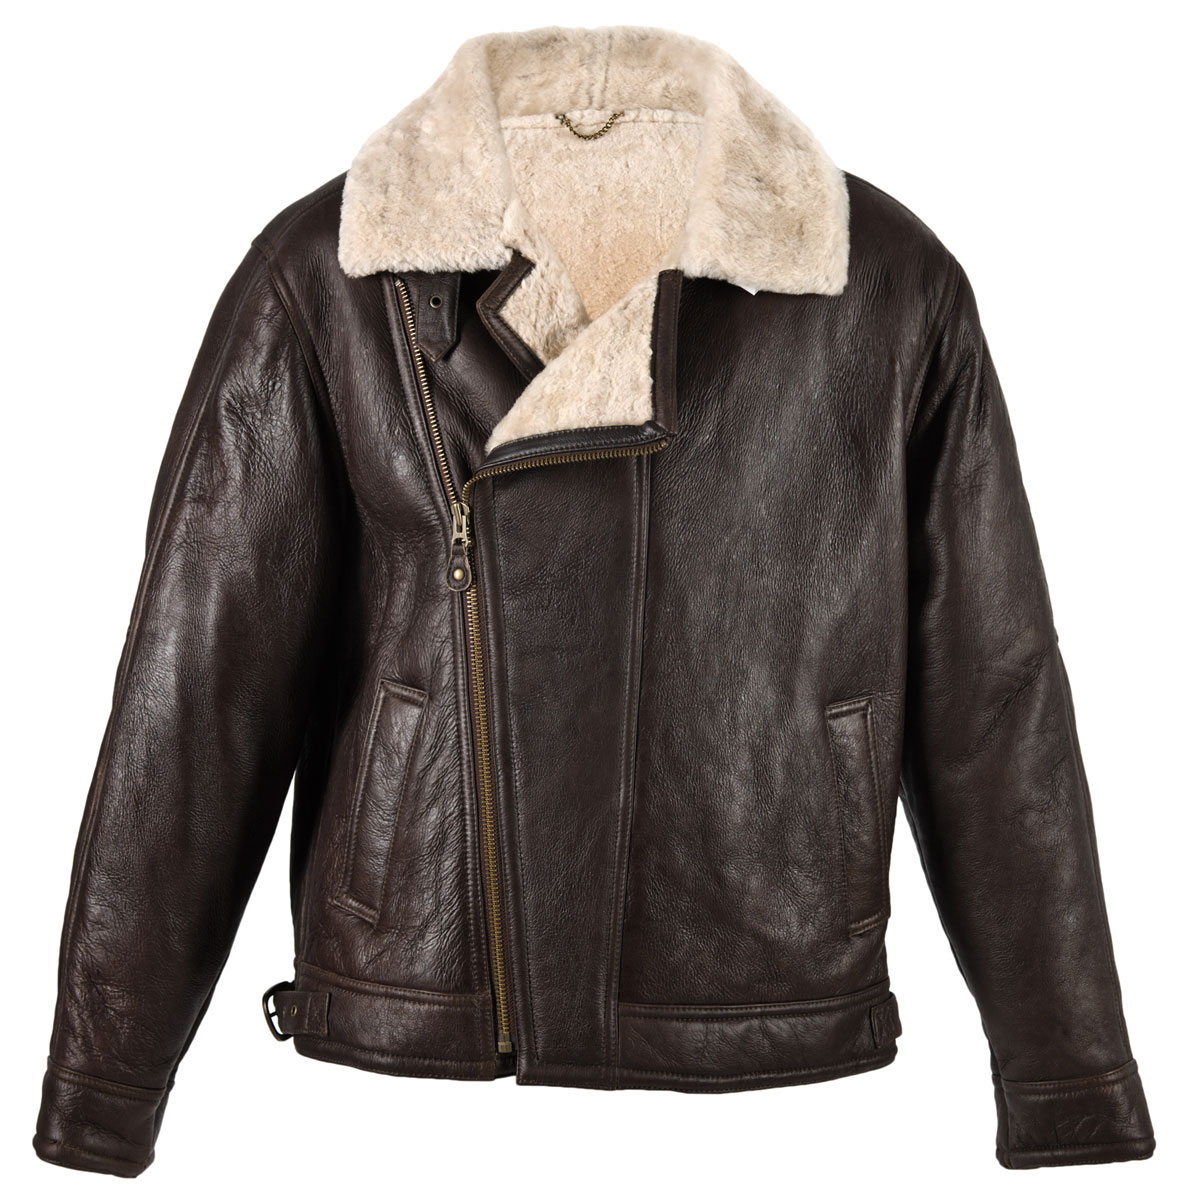 Leather and sheepskin coats and jackets – Modern fashion jacket ...